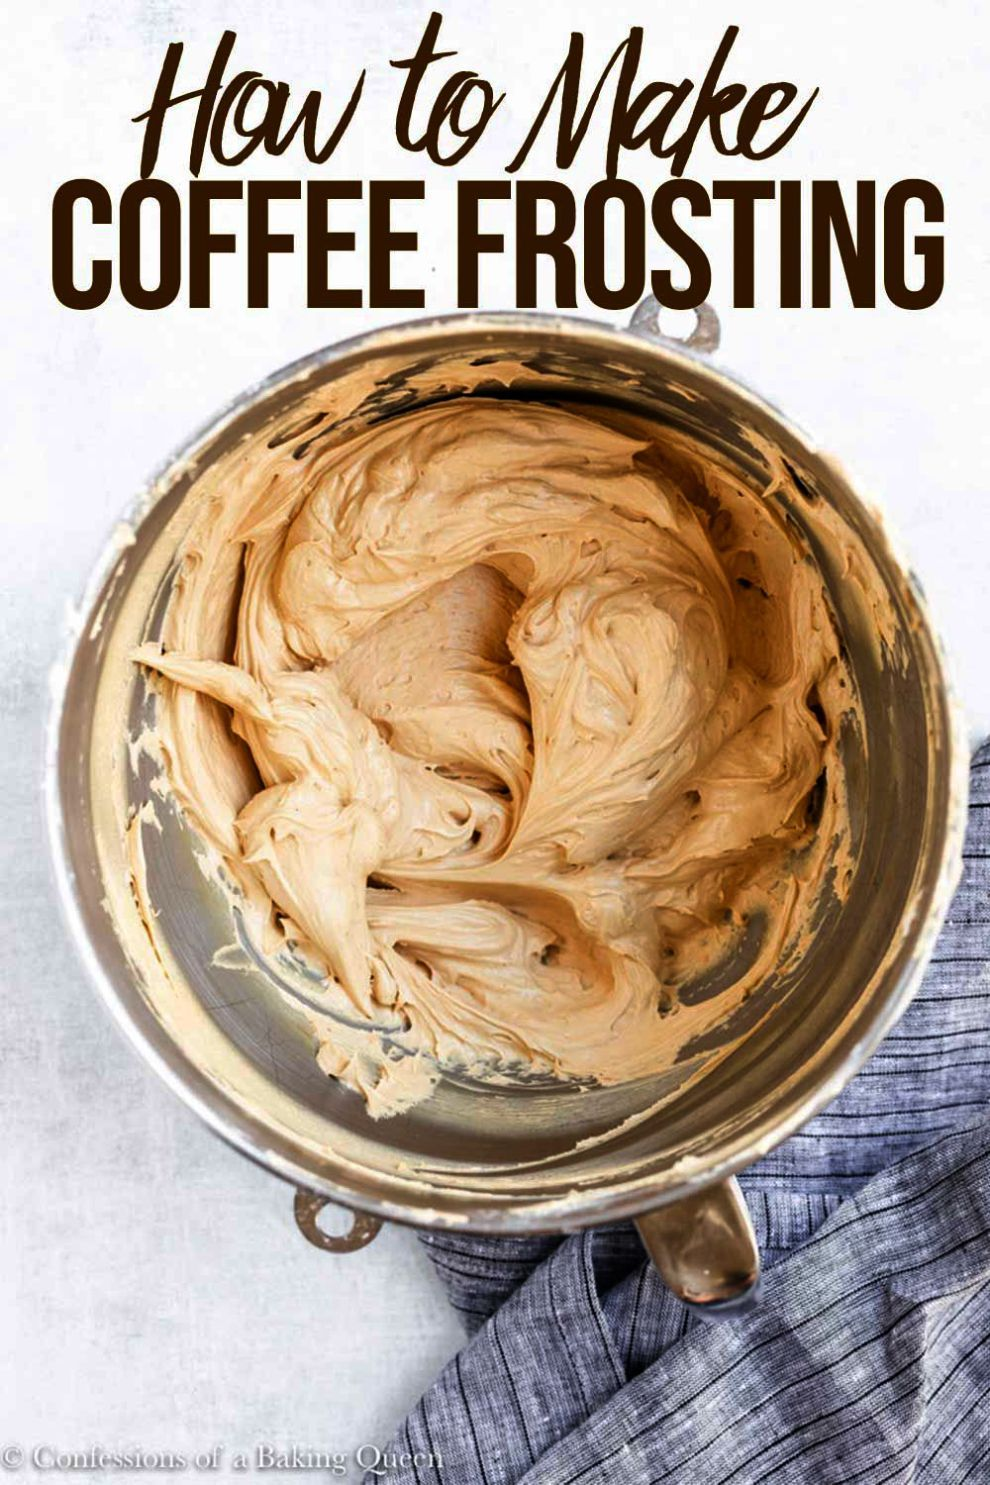 Tips And Ideas For A Better Cup Of Coffee With Images Coffee Buttercream Desserts Frosting Recipes